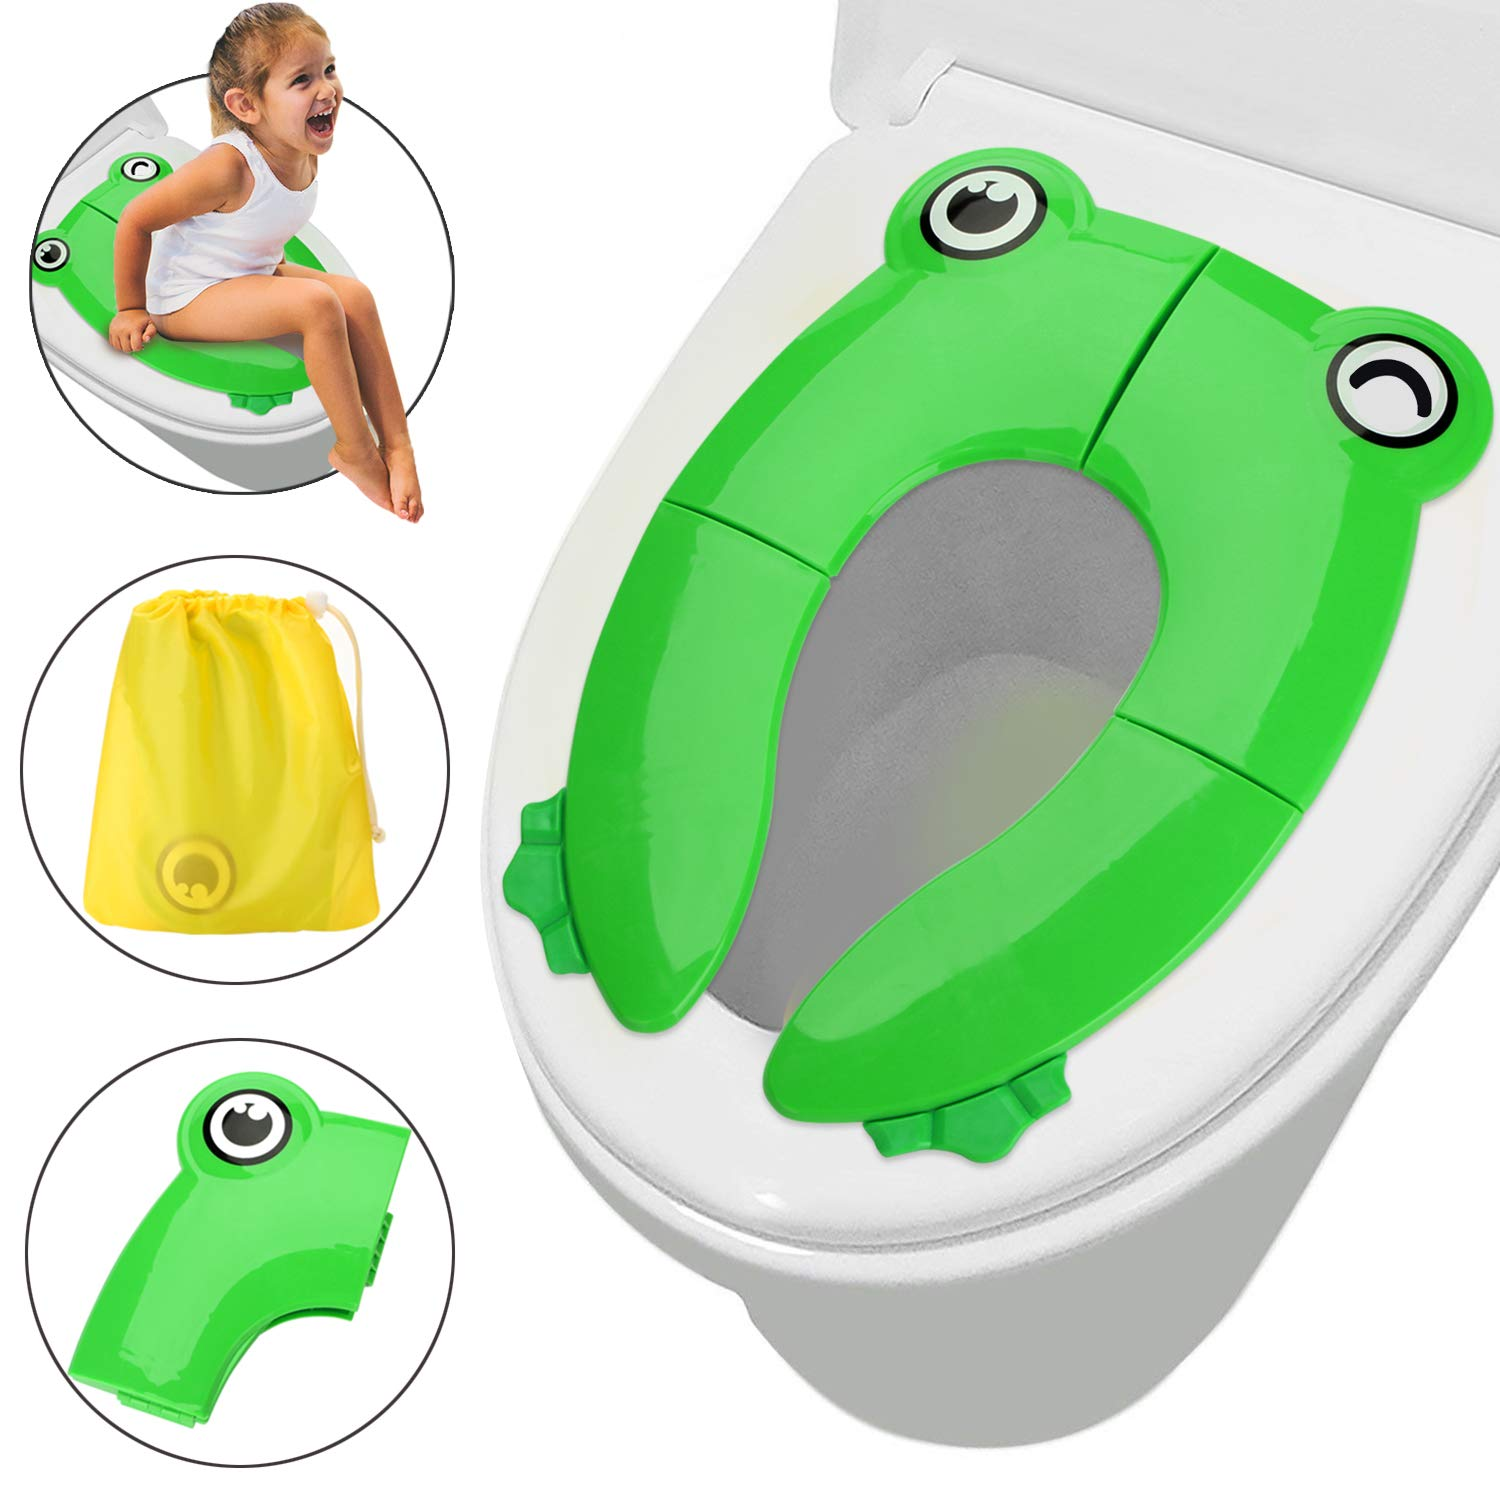 Folding Potty Training Seat for Kids, FITNATE Upgrade Portable Reusable Potty Training Seat Cover Large Non-Slip Pads With Carry Bags for Babies, Toddlers and Kids (Green) (Deep Green) BB0038G-BDFBA